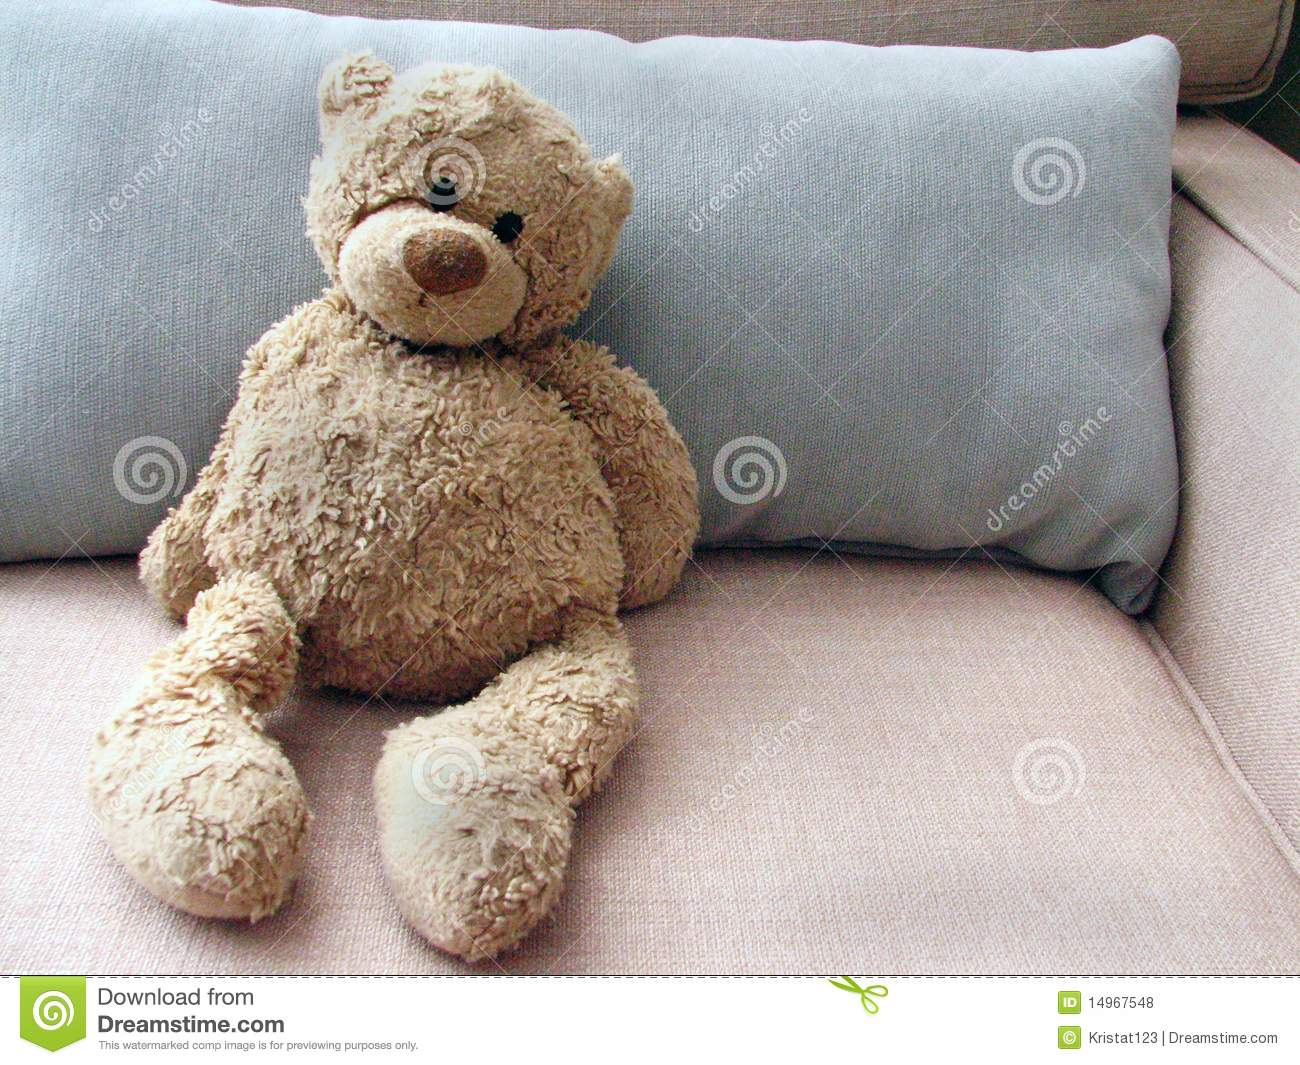 Stuffed Toy Teddy Bear On Couch With Pillow Stock Photo